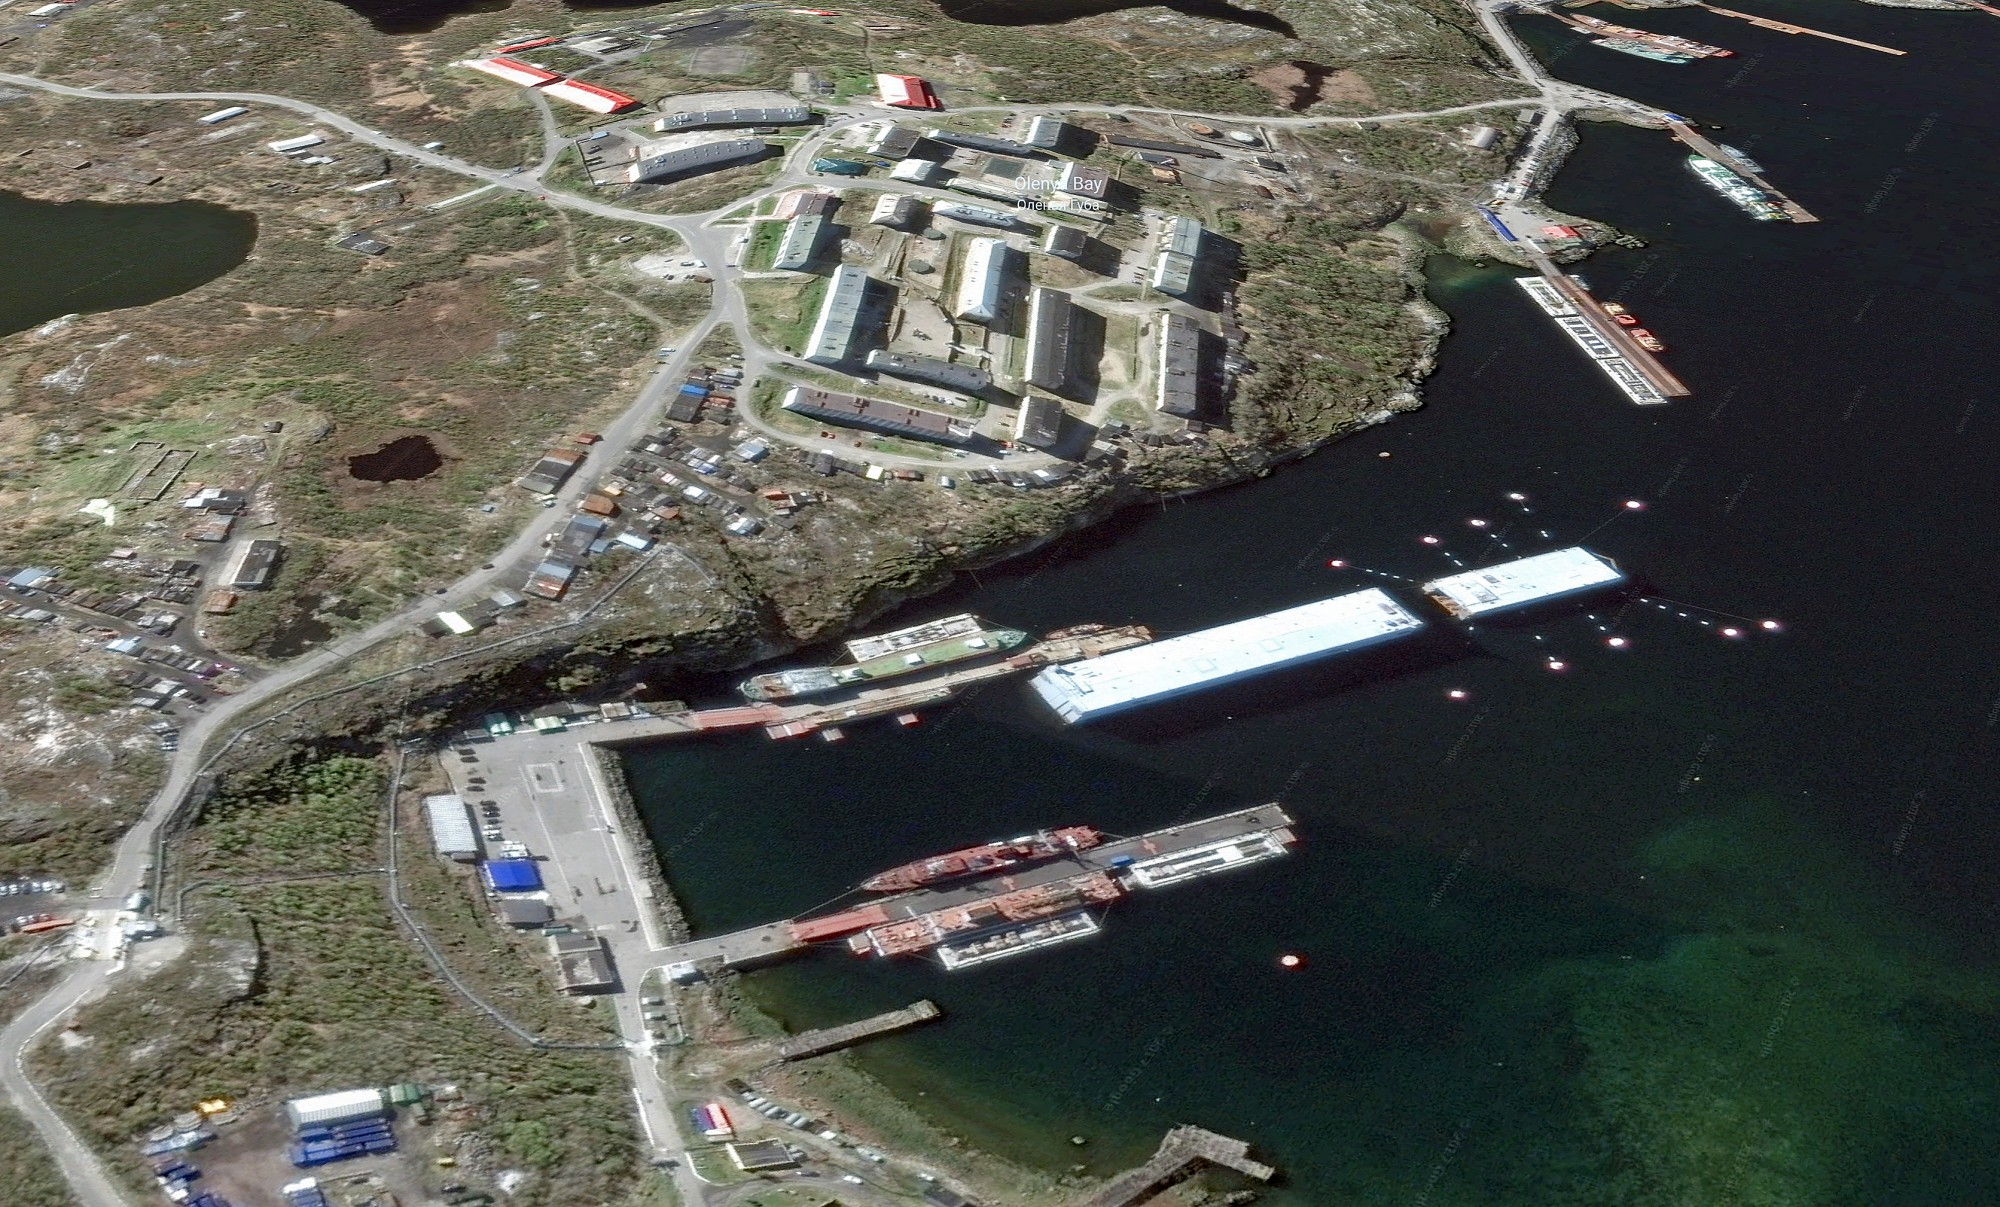 From this secret base, Russian spy ships increase activity